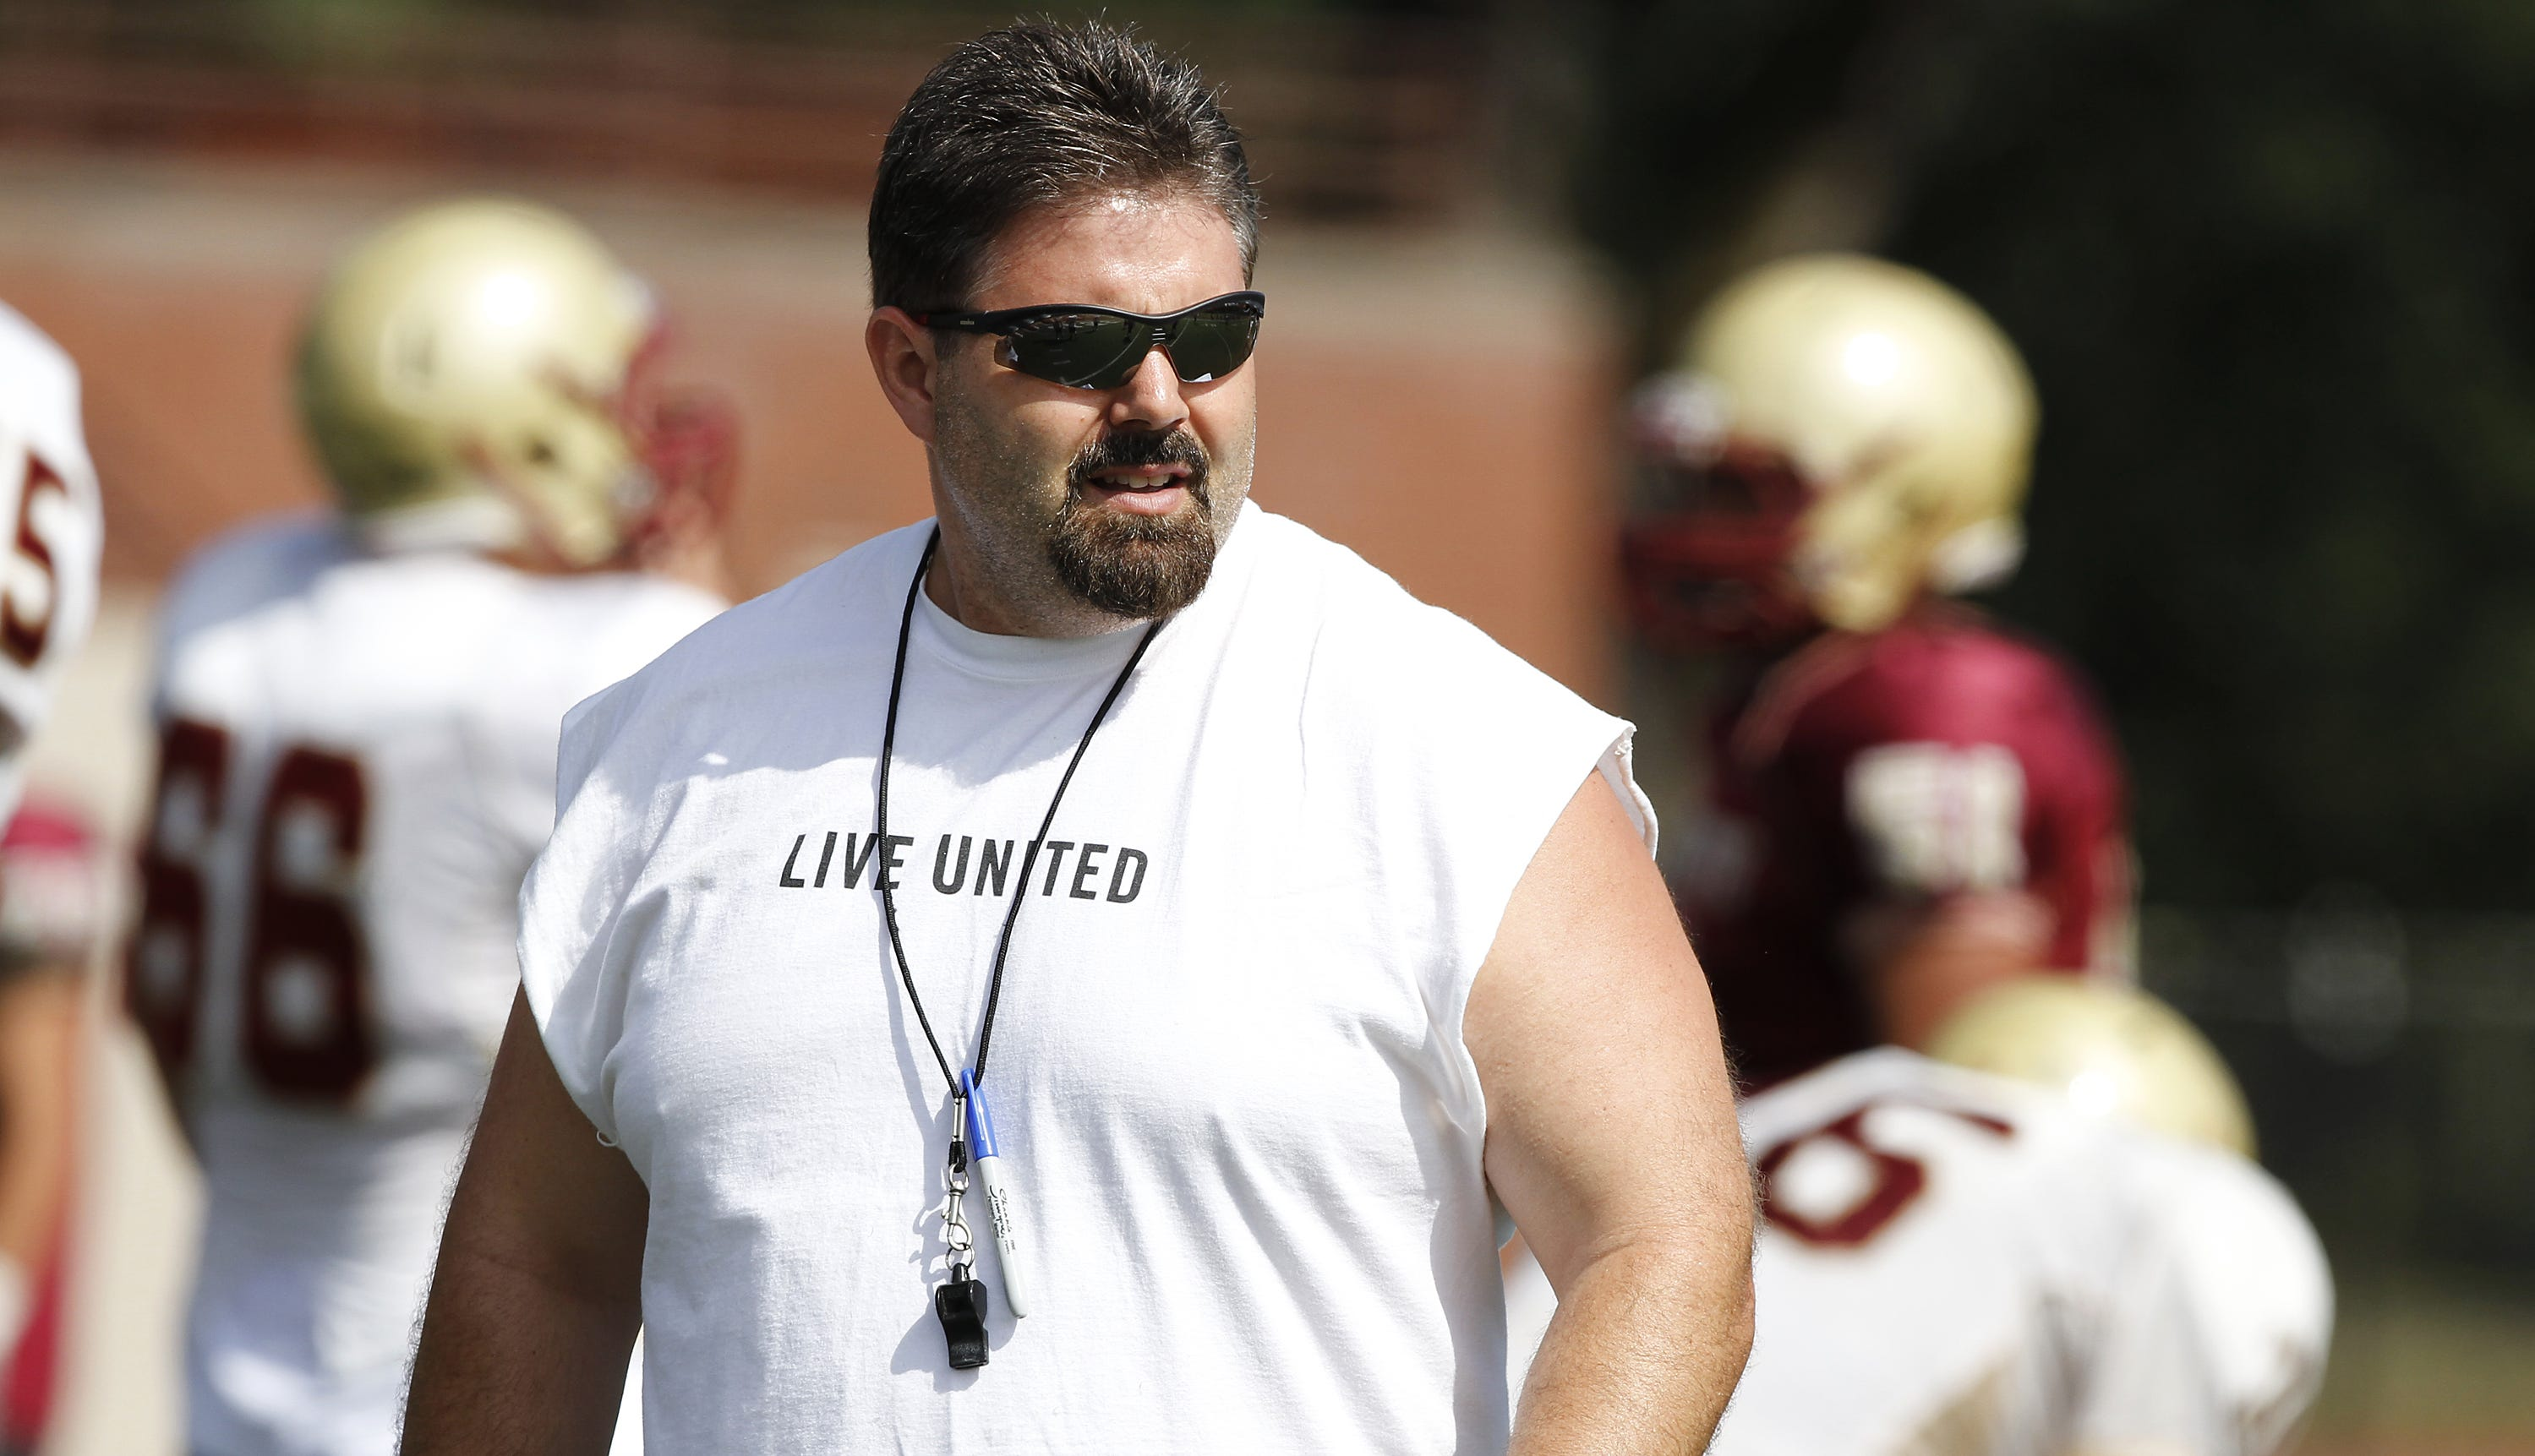 Glen Fowles had a 26-39 overall record in seven seasons as head football coach at Willamette University.